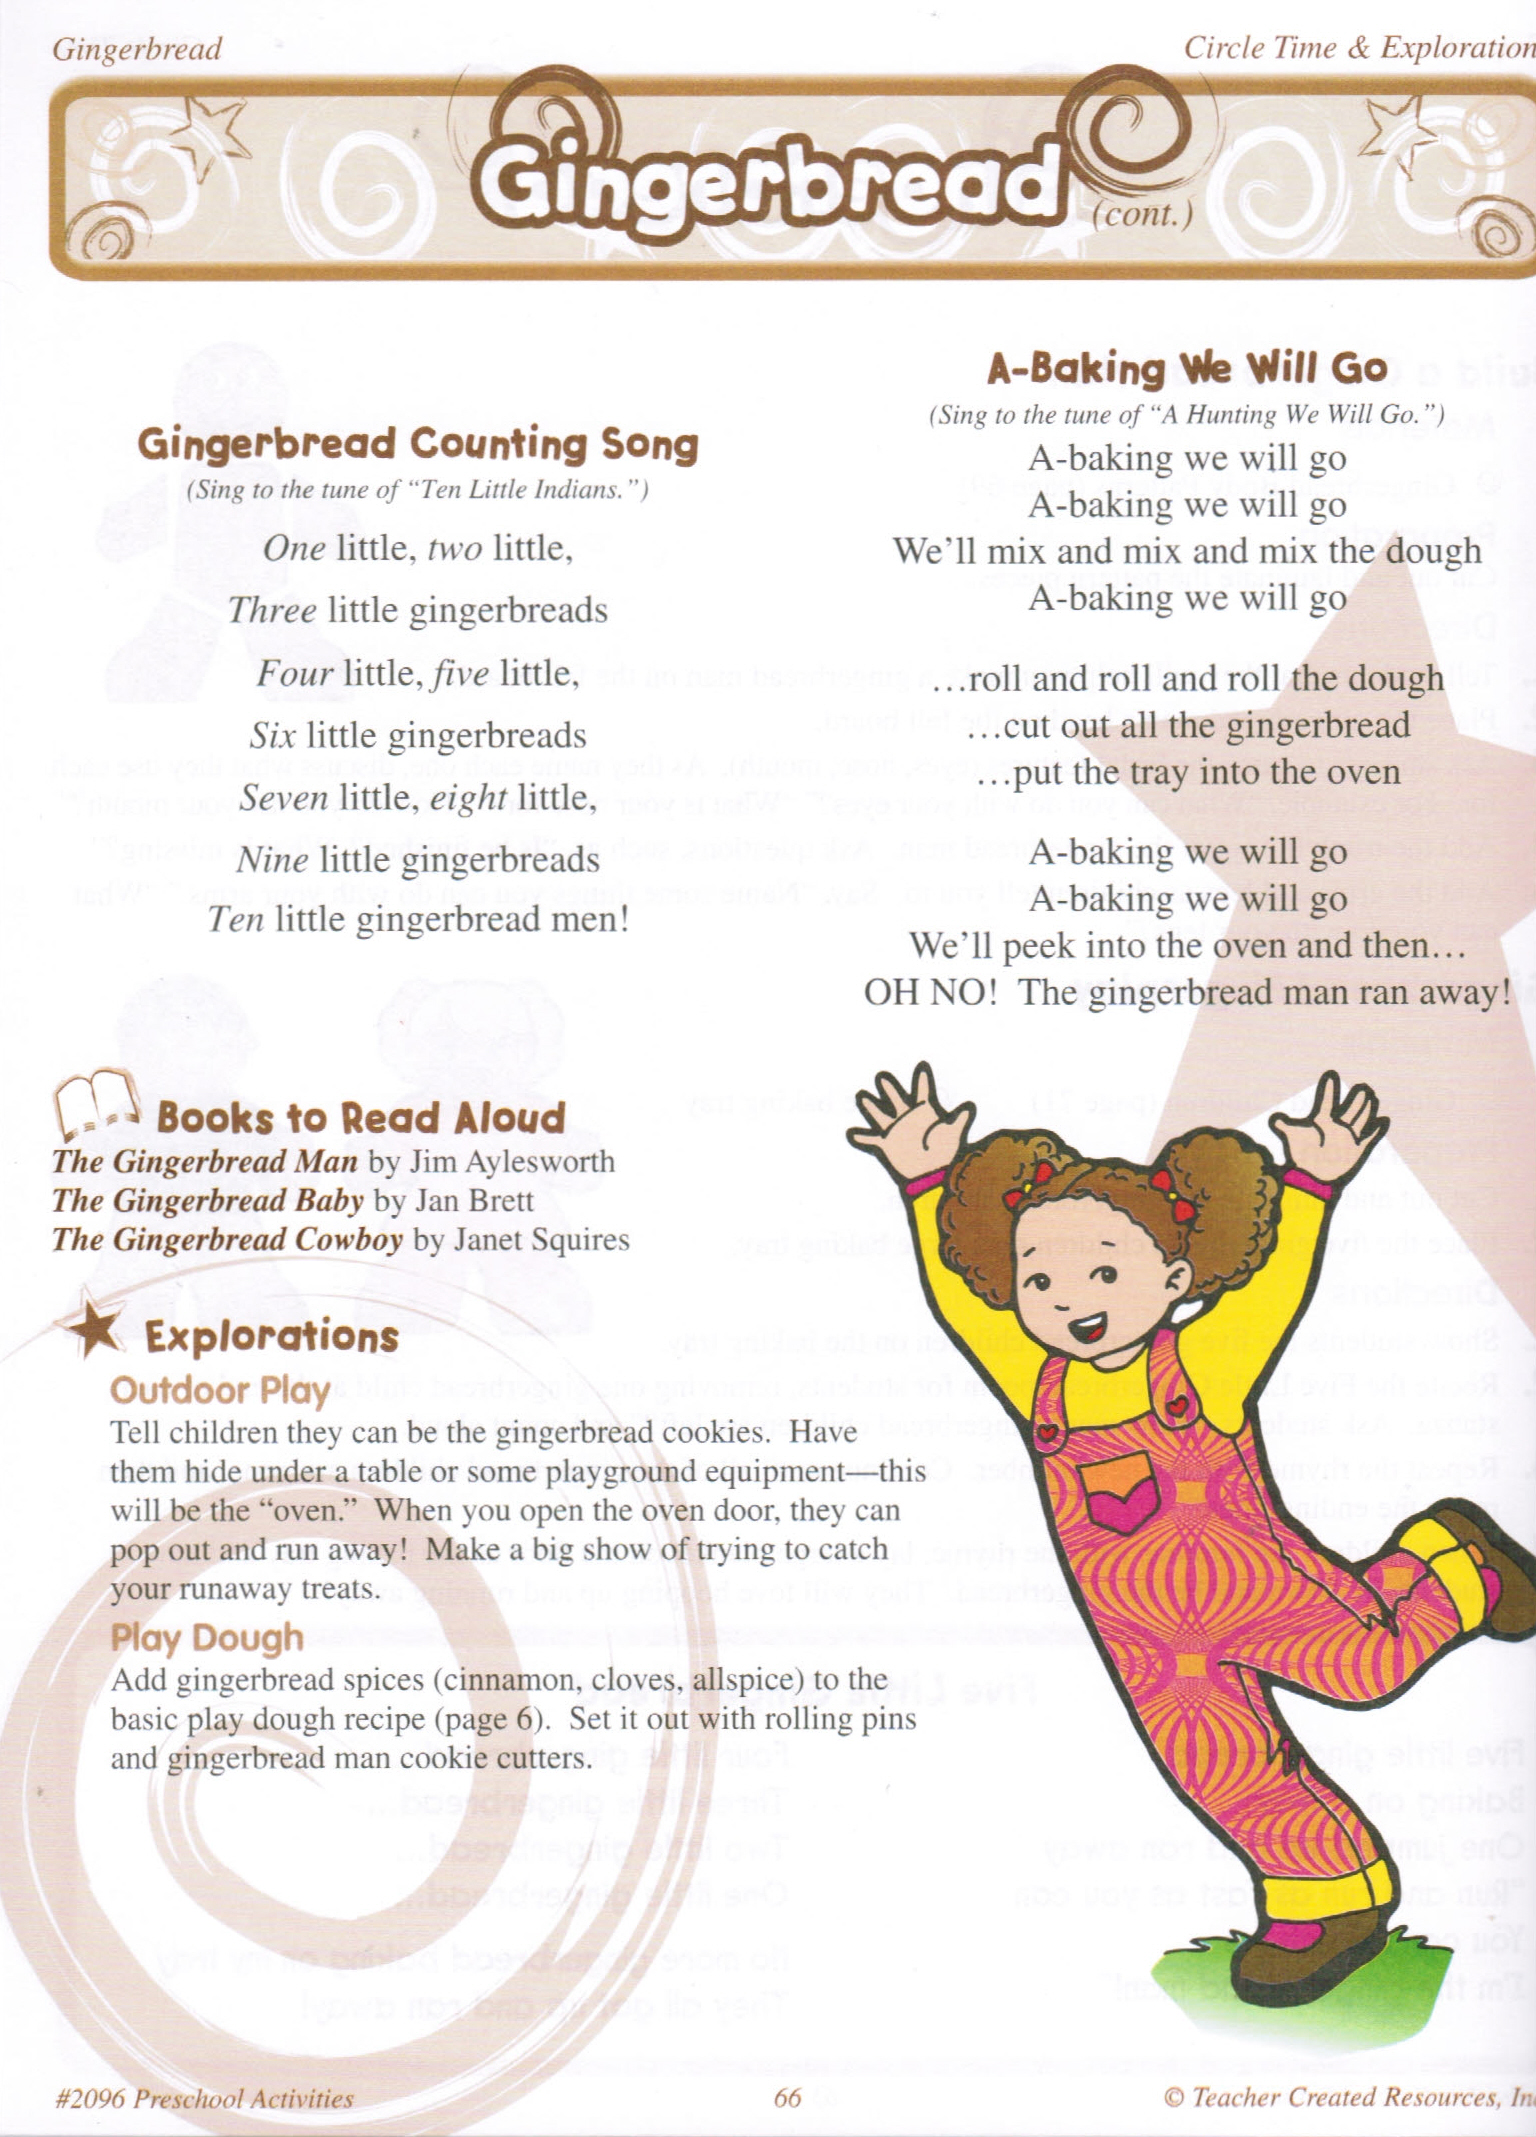 Gingerbread man learning activities and patterns o block books